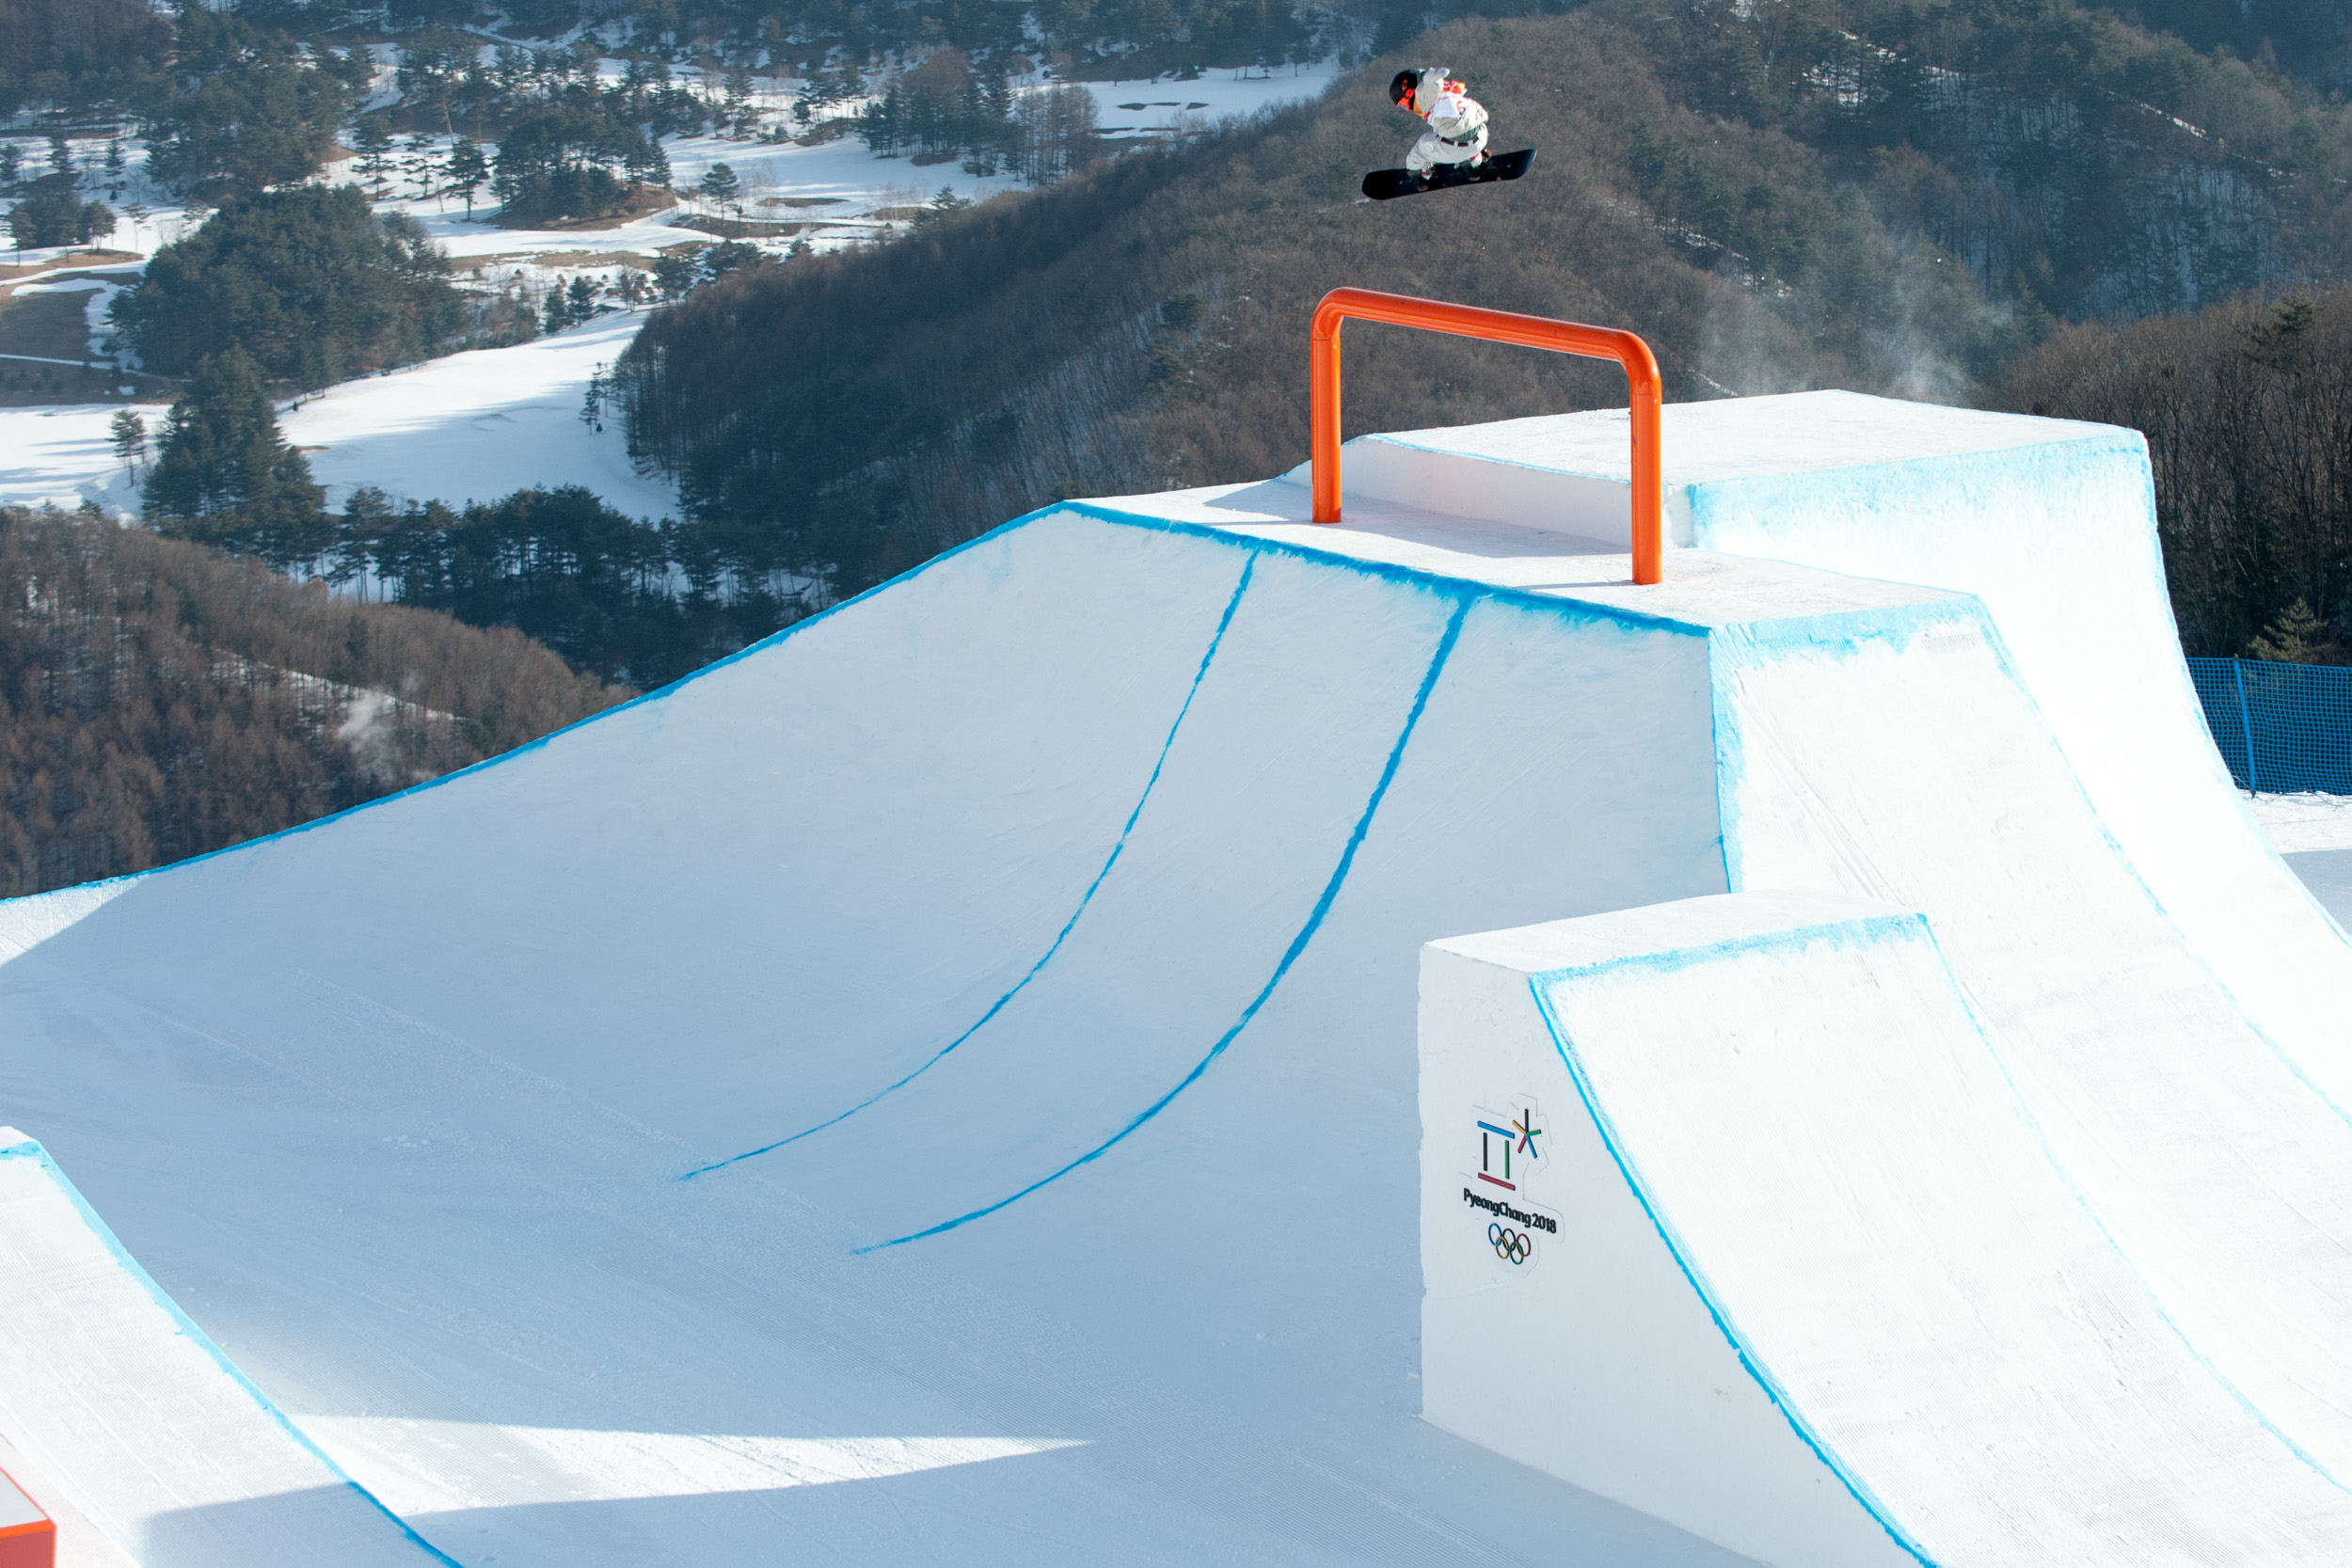 Teen Gerard wins slopestyle snowboarding for USA's 1st gold medal